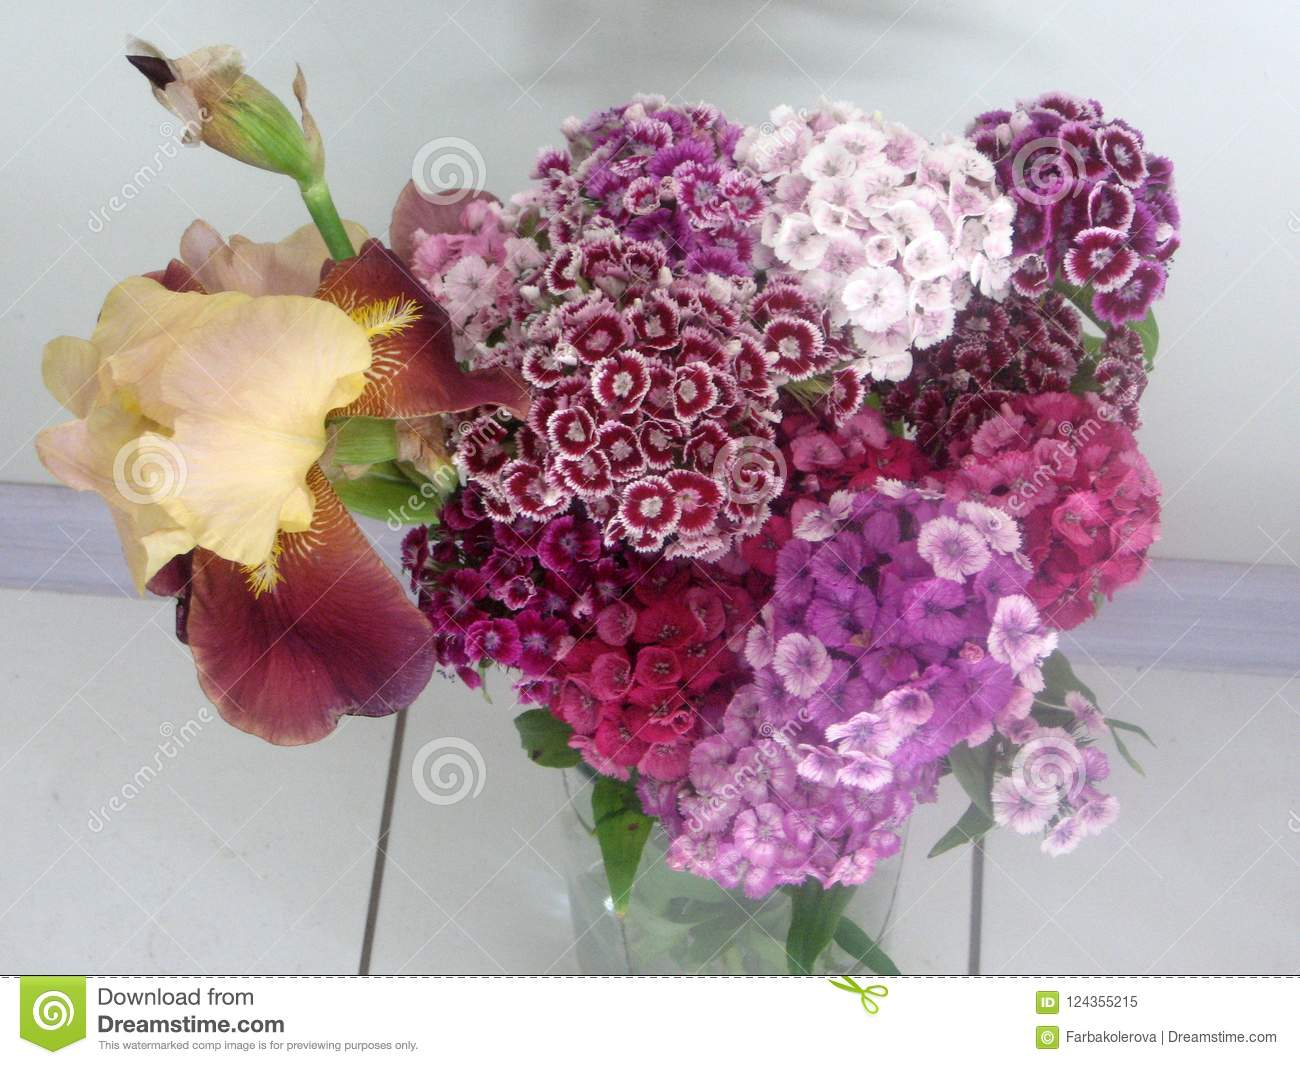 Beautiful Carnation Flowers In A Vase On A Table Bouquet Of Violet